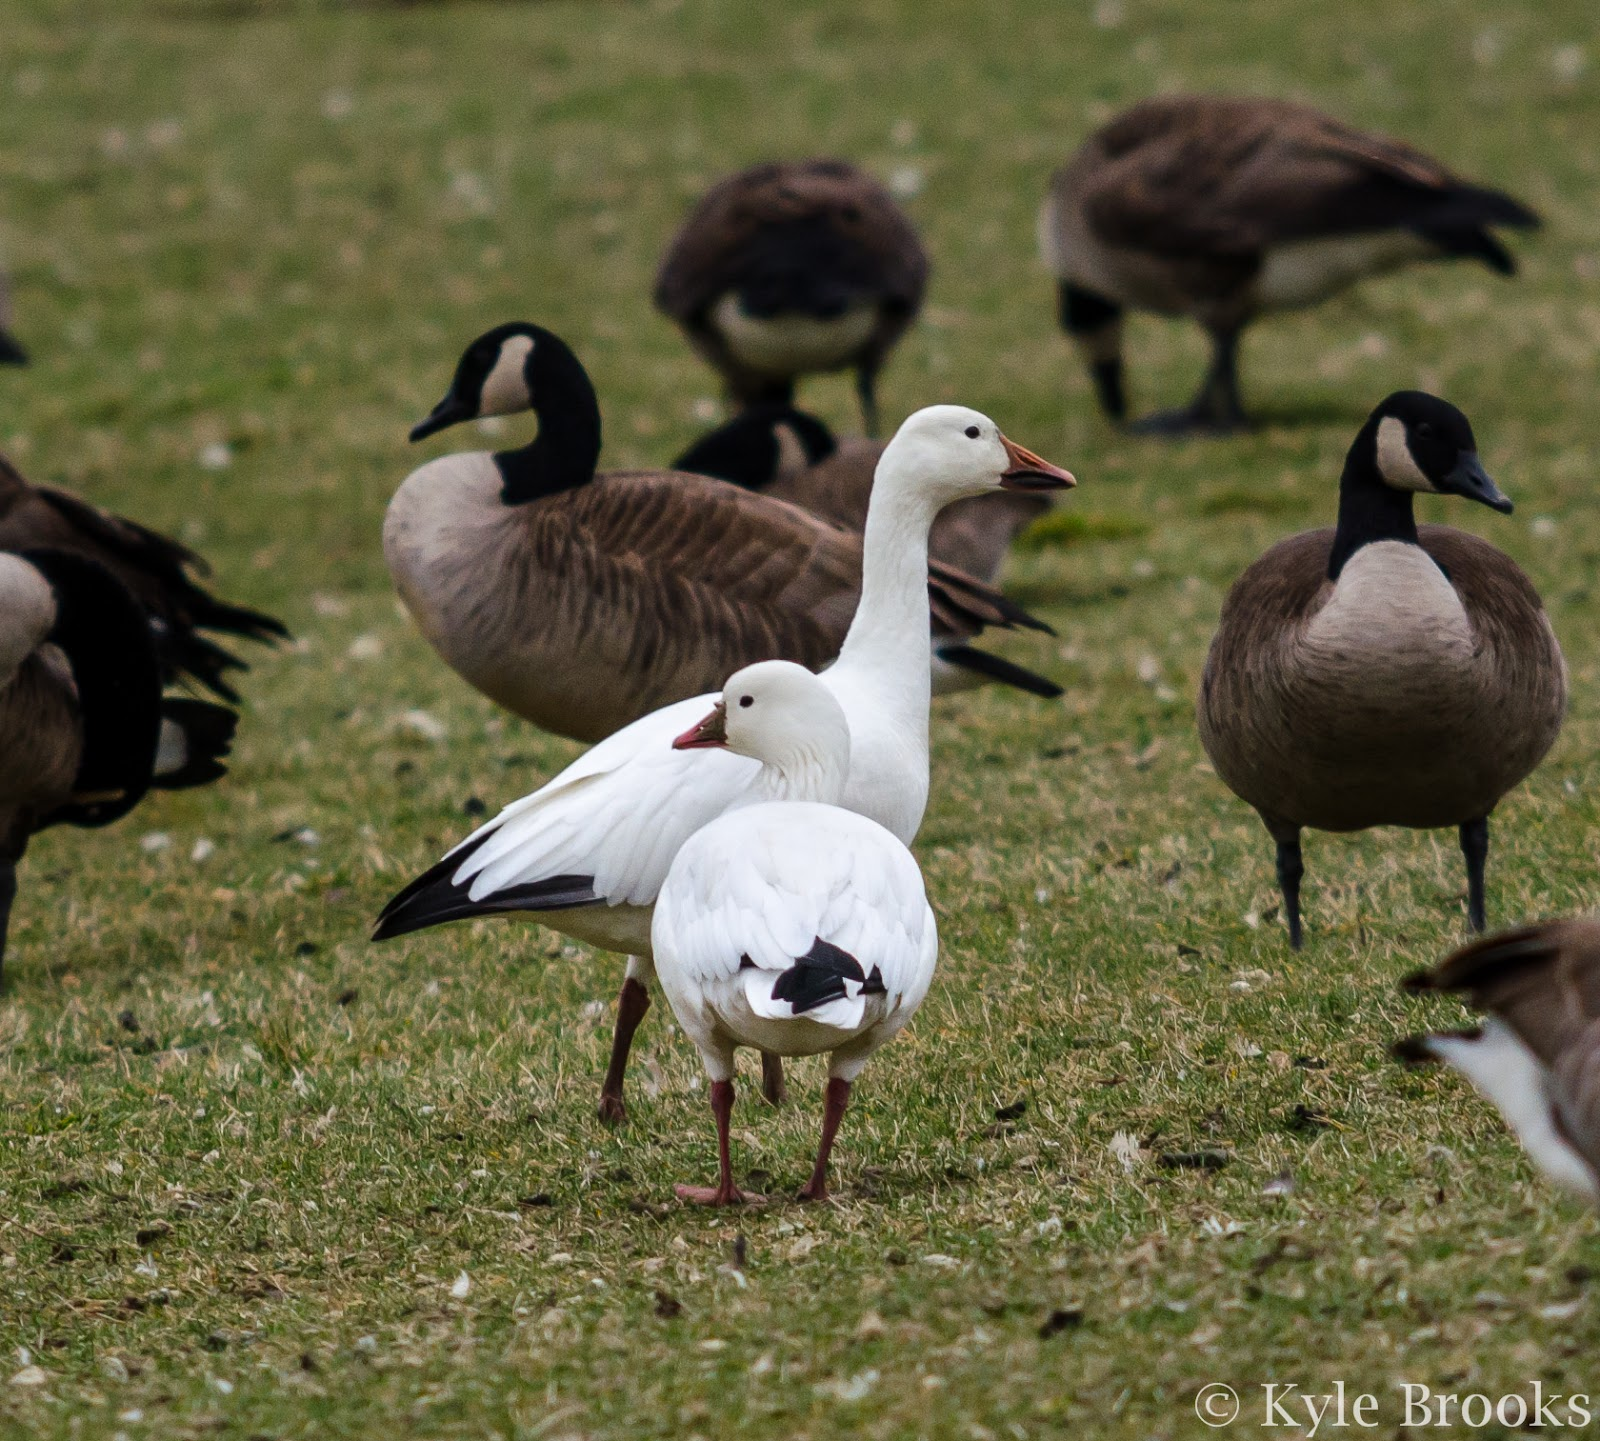 Snow Goose Ross's Goose comparison